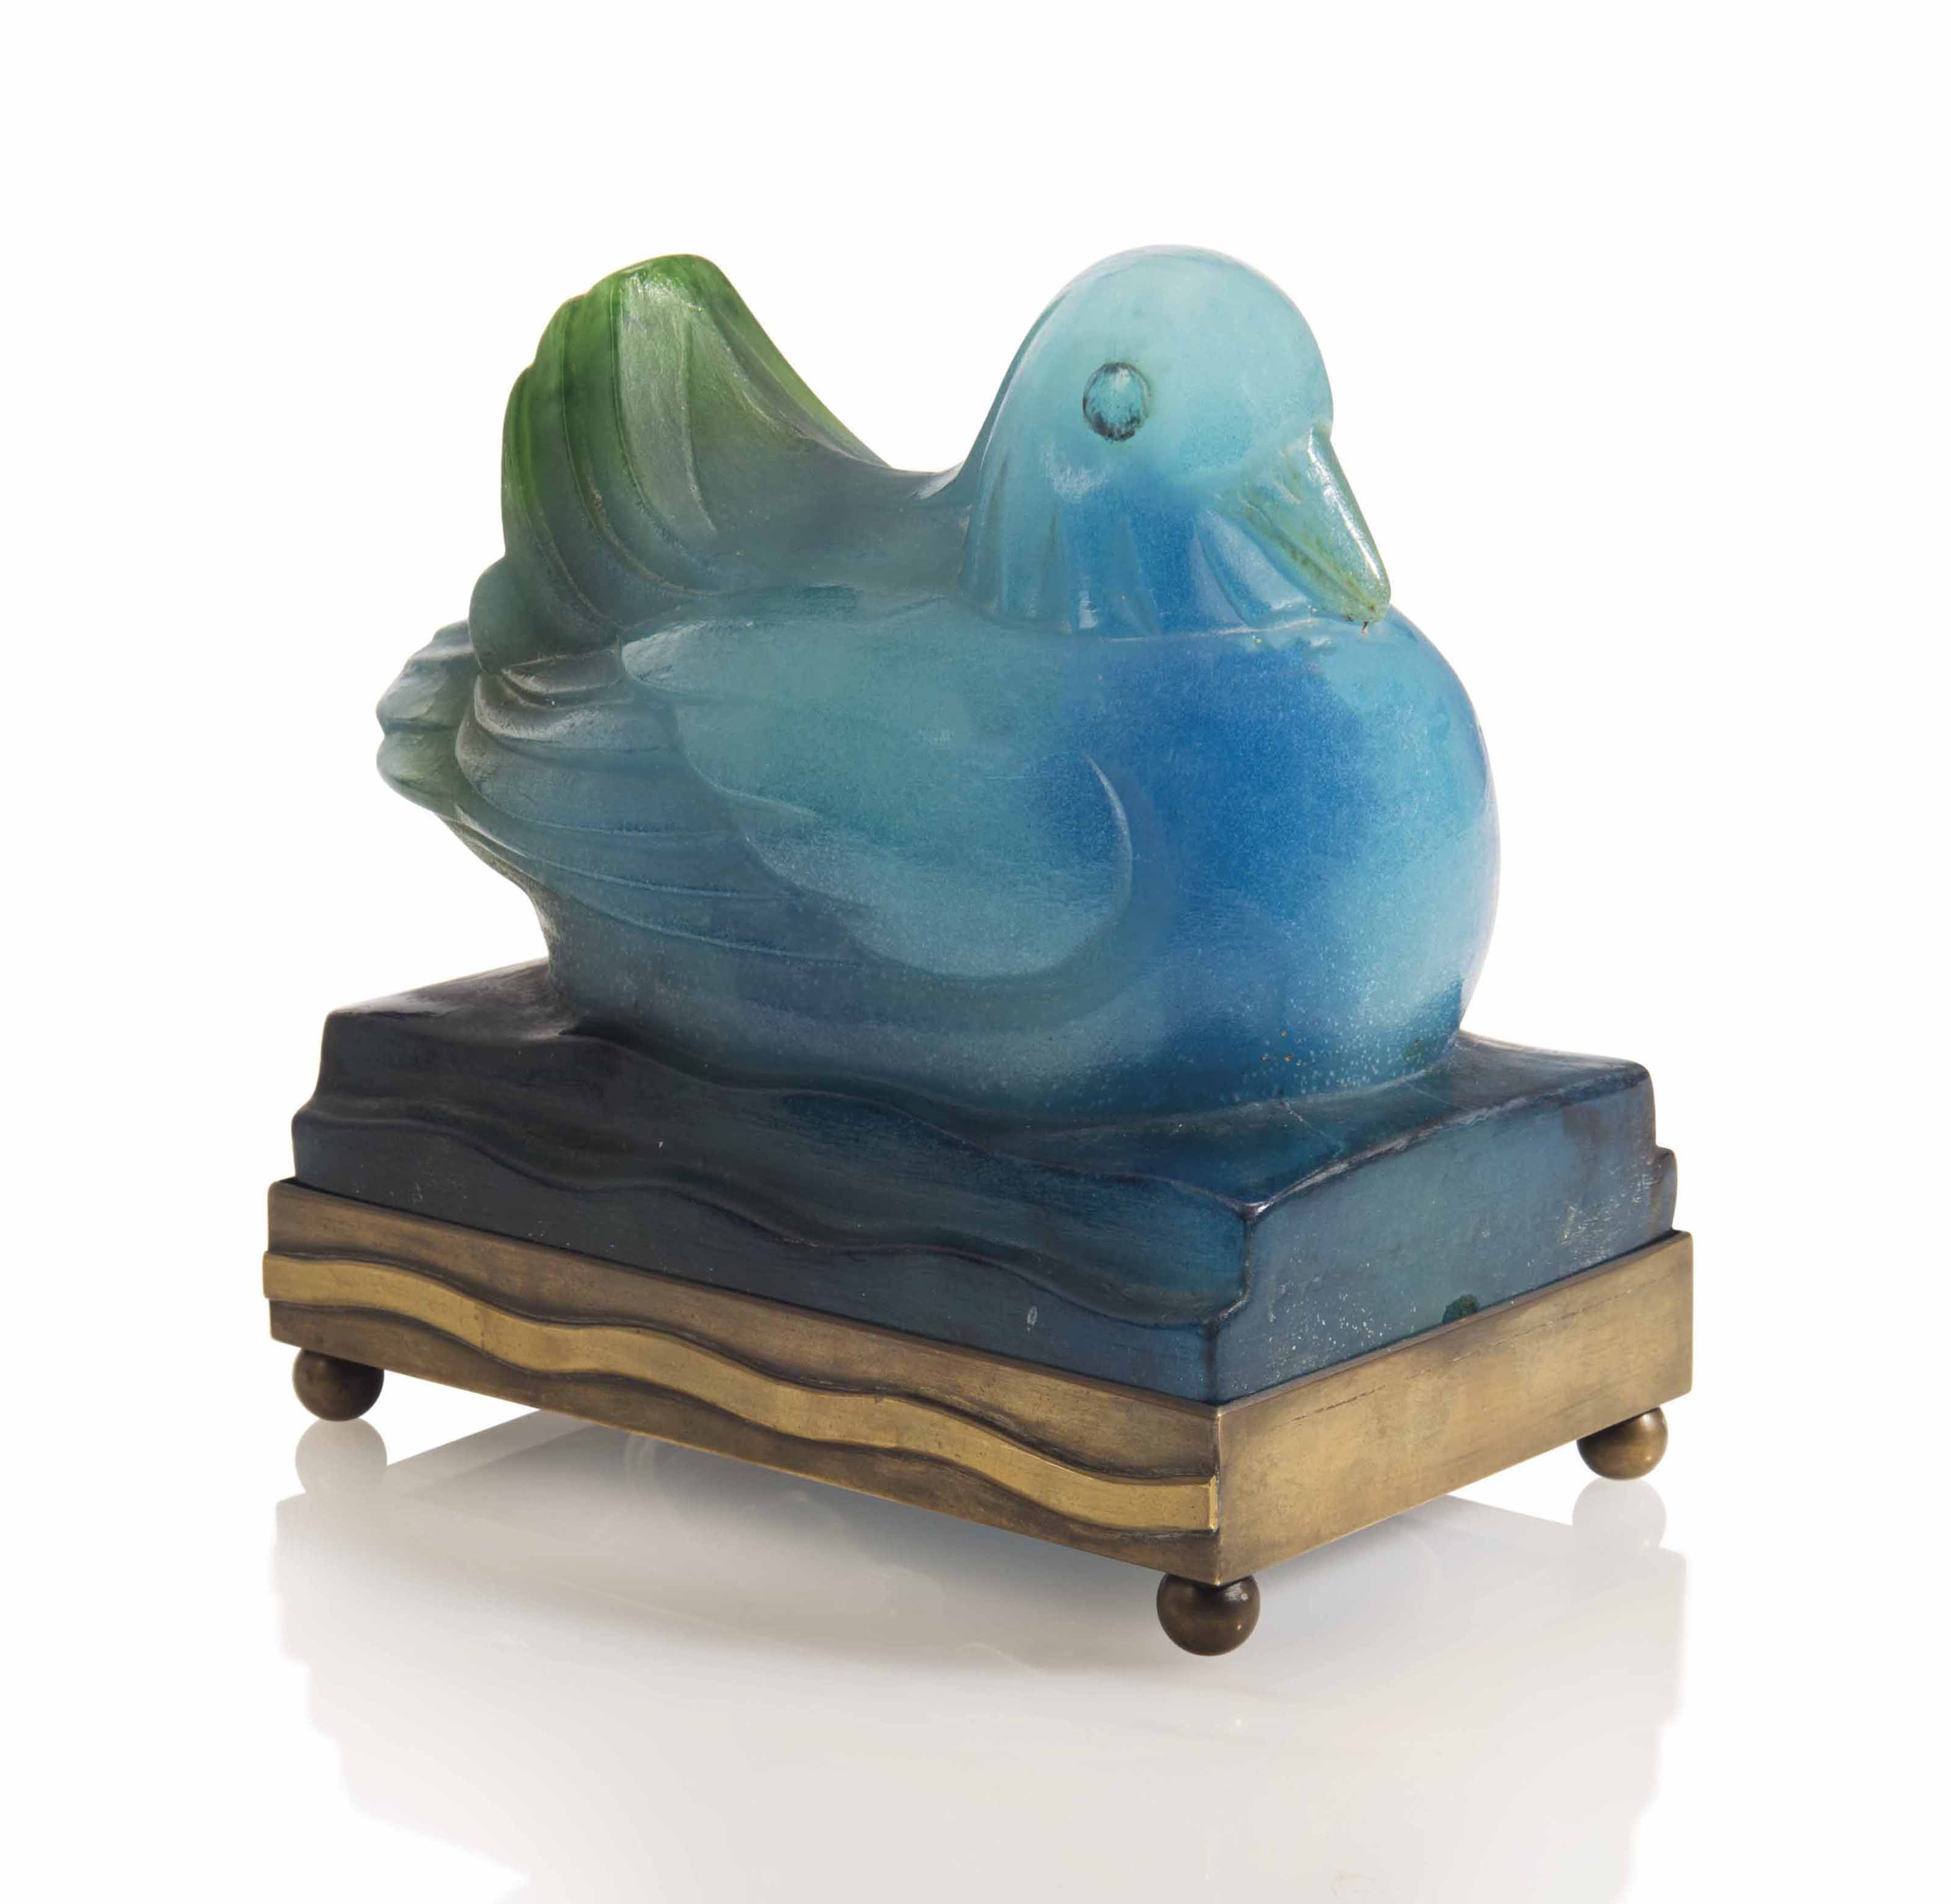 'CANARD'. AN AMALRIC WALTER (1870-1959) PATE-DE-VERRE NIGHT LIGHT